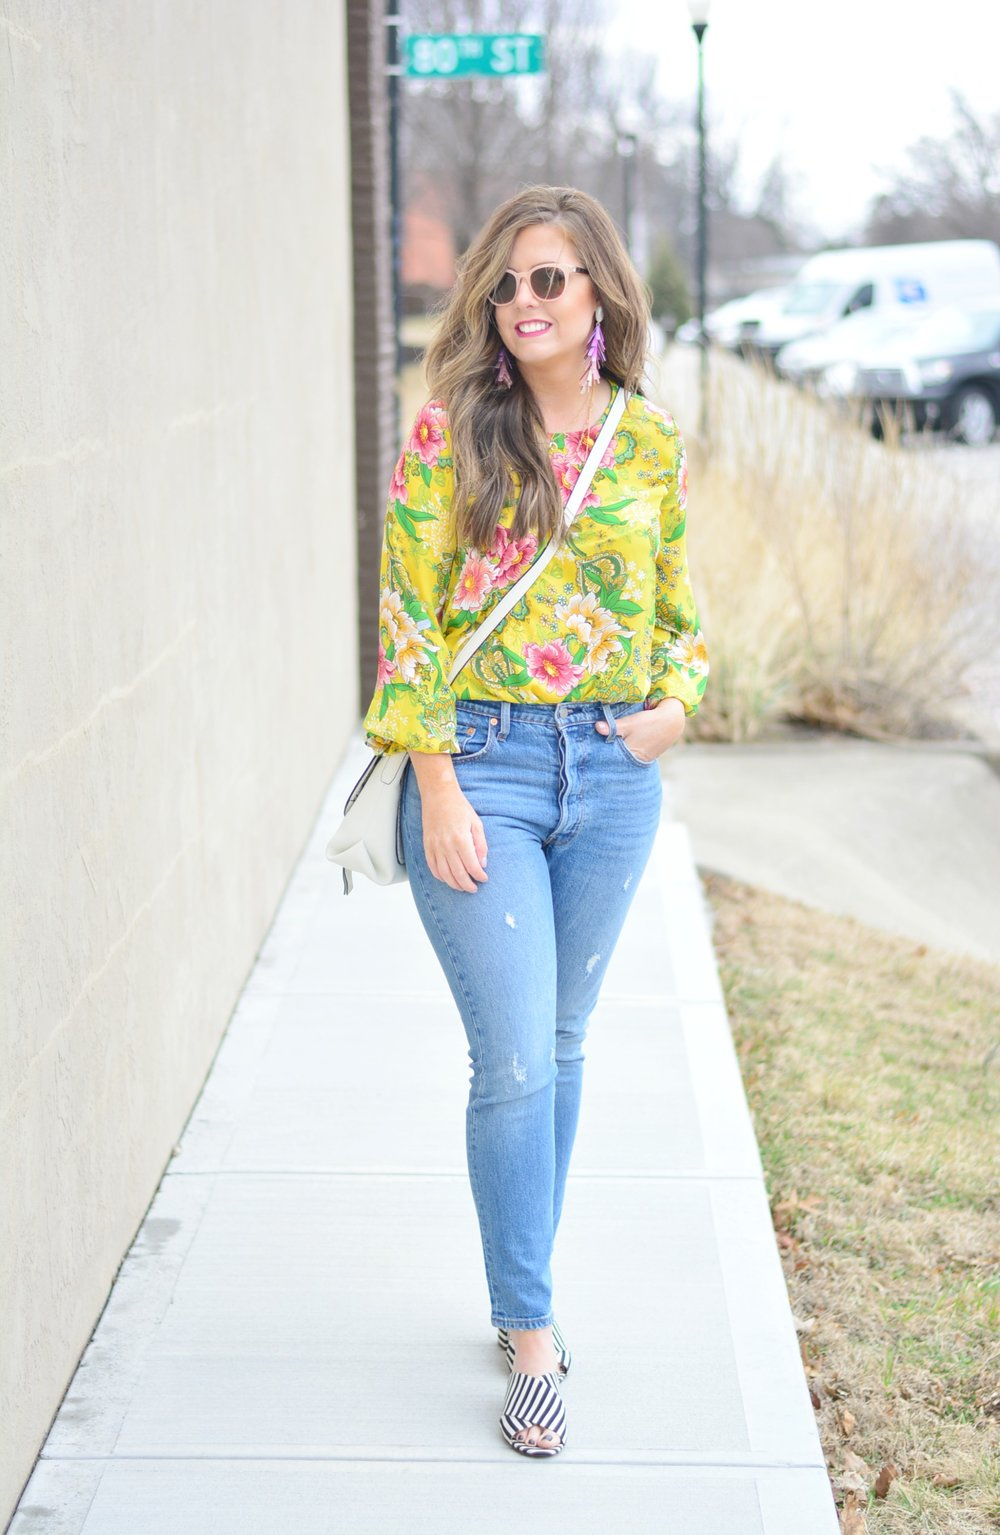 Sophisticaited spring outfit